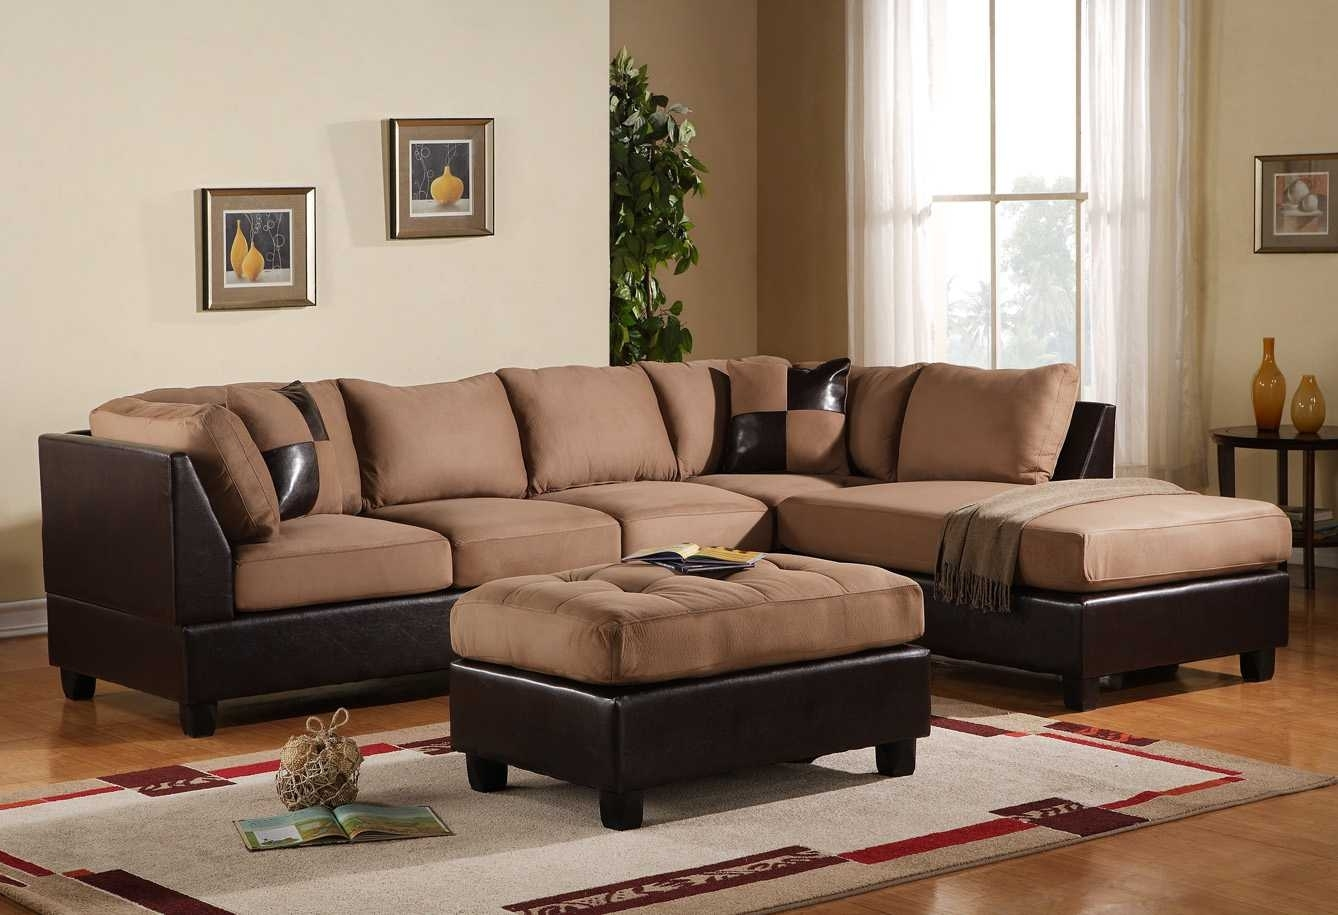 Rooms Go Sectional Sofas Images Beautiful Sofa In Bed Vancouver With To